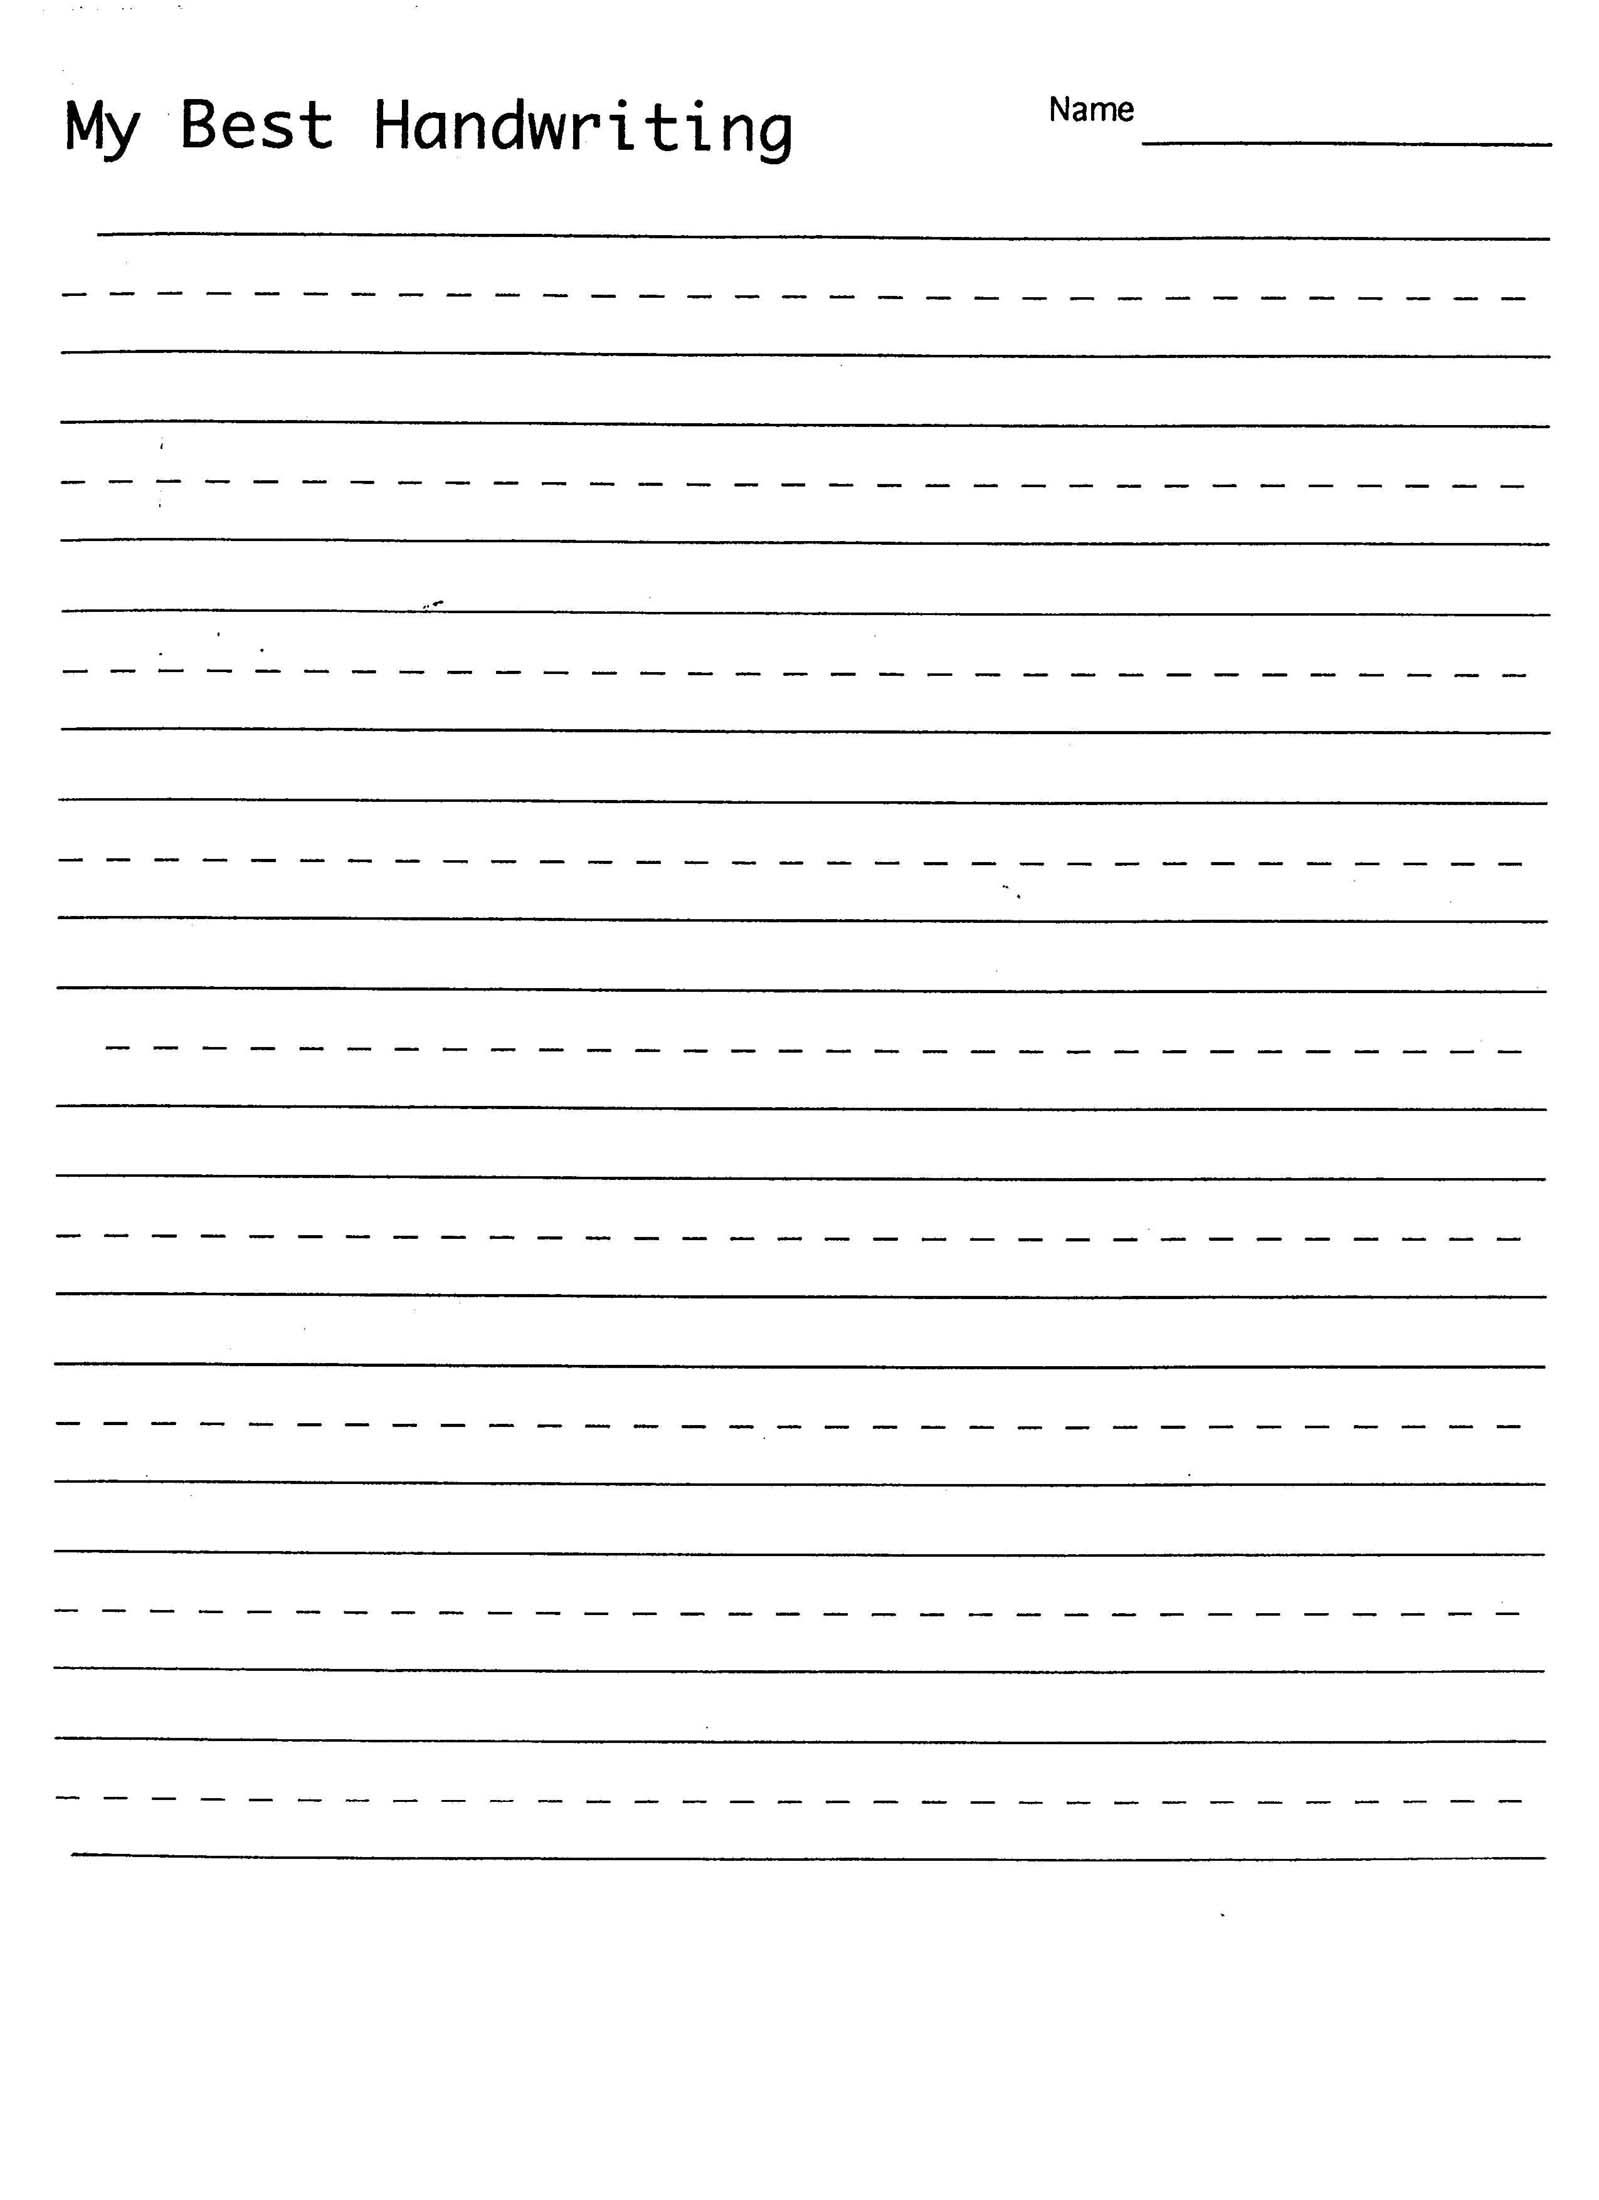 6 Best Images of Free Printable Blank Handwriting Practice Sheet - Printable Blank Writing Worksheet Worksheet Handwriting Practice Sheets and Printable ...